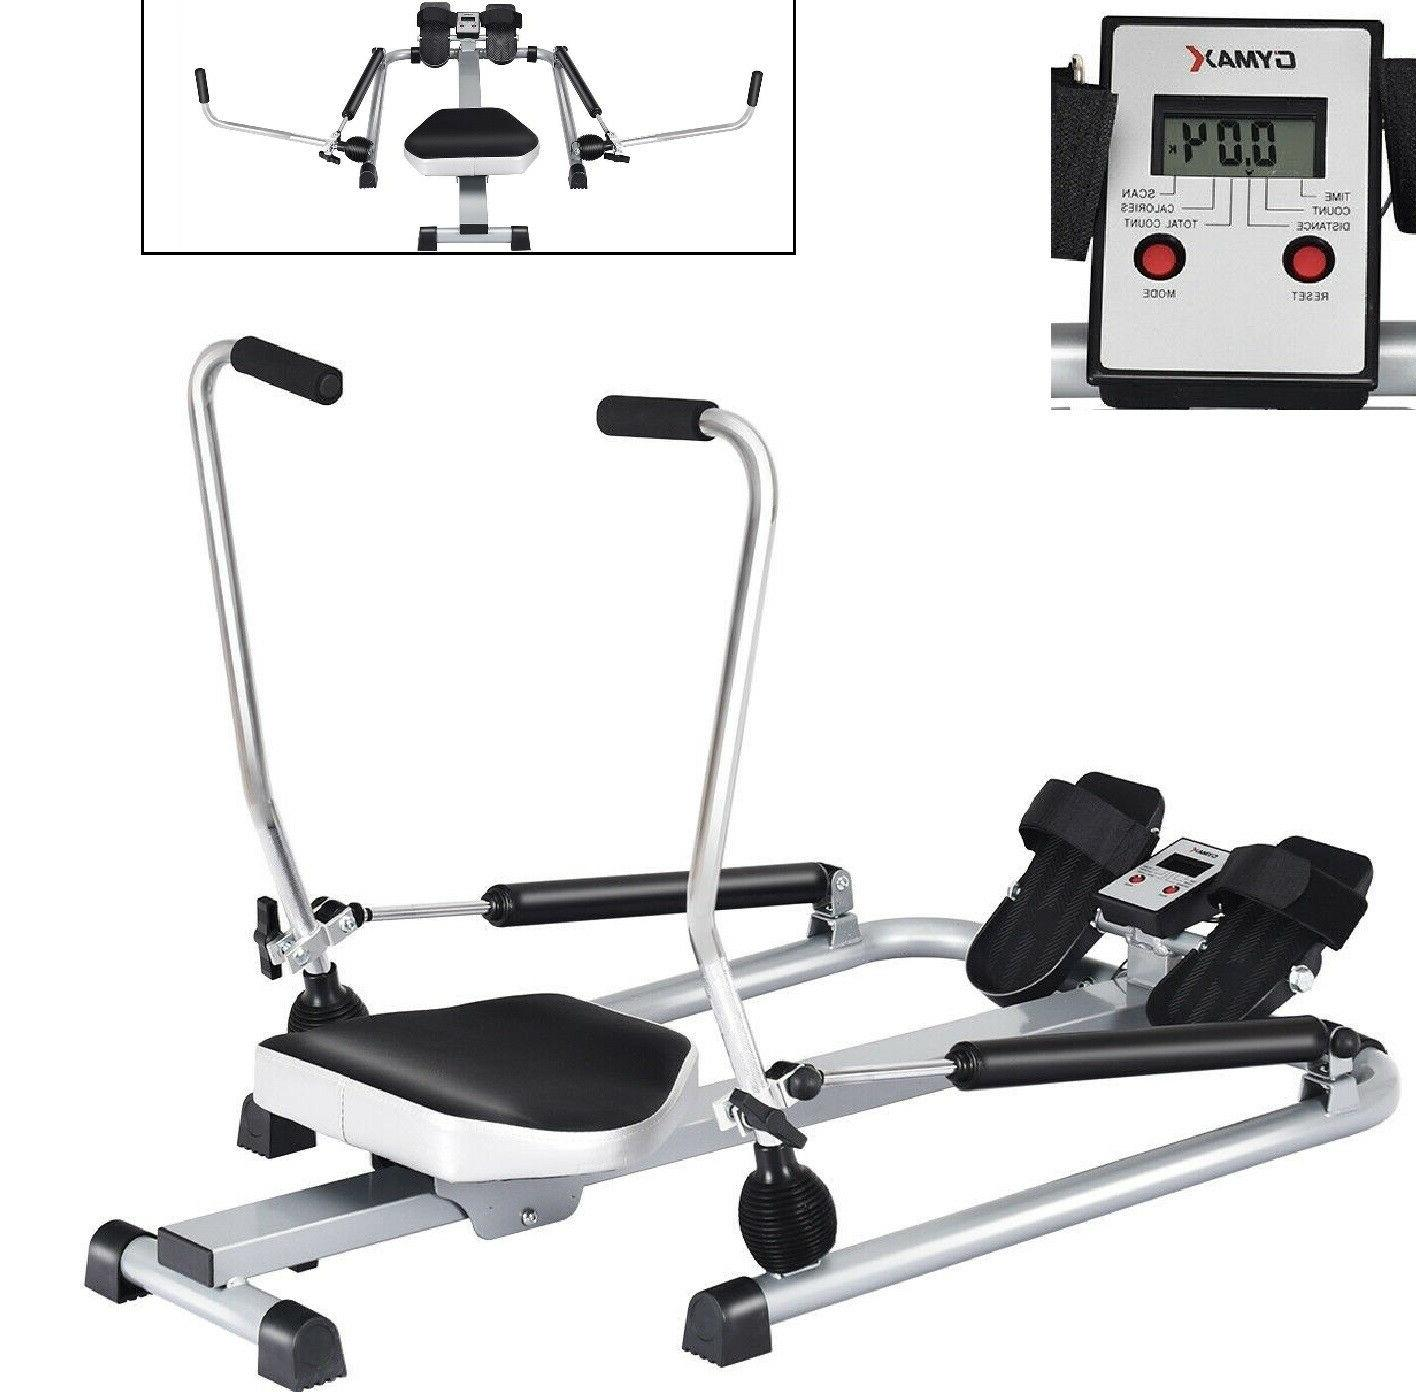 rowing machine hydraulic rower adjustable resistance levels